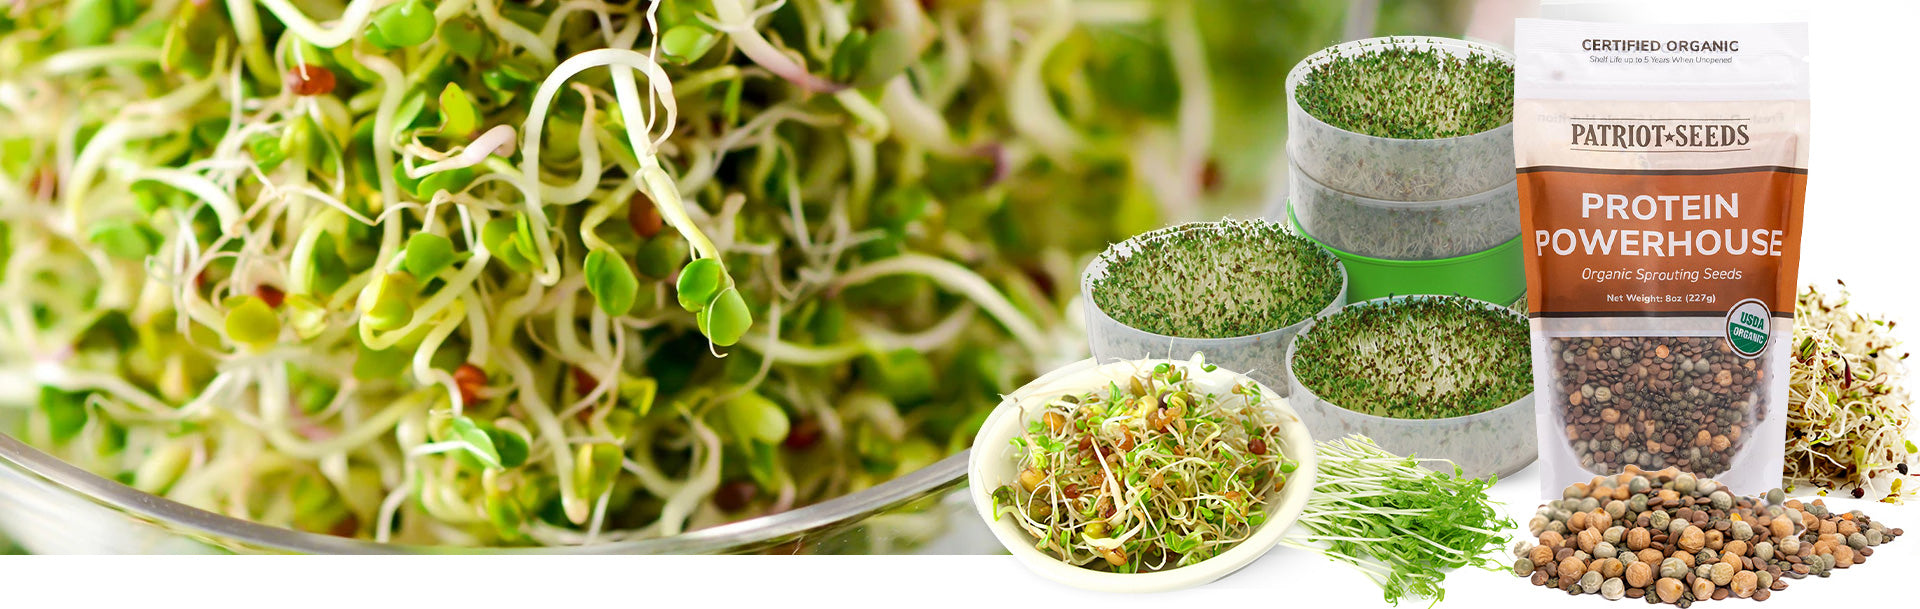 Sprouting Seeds & Micro Greens - potent sources of many vitamins, minerals, amino acids